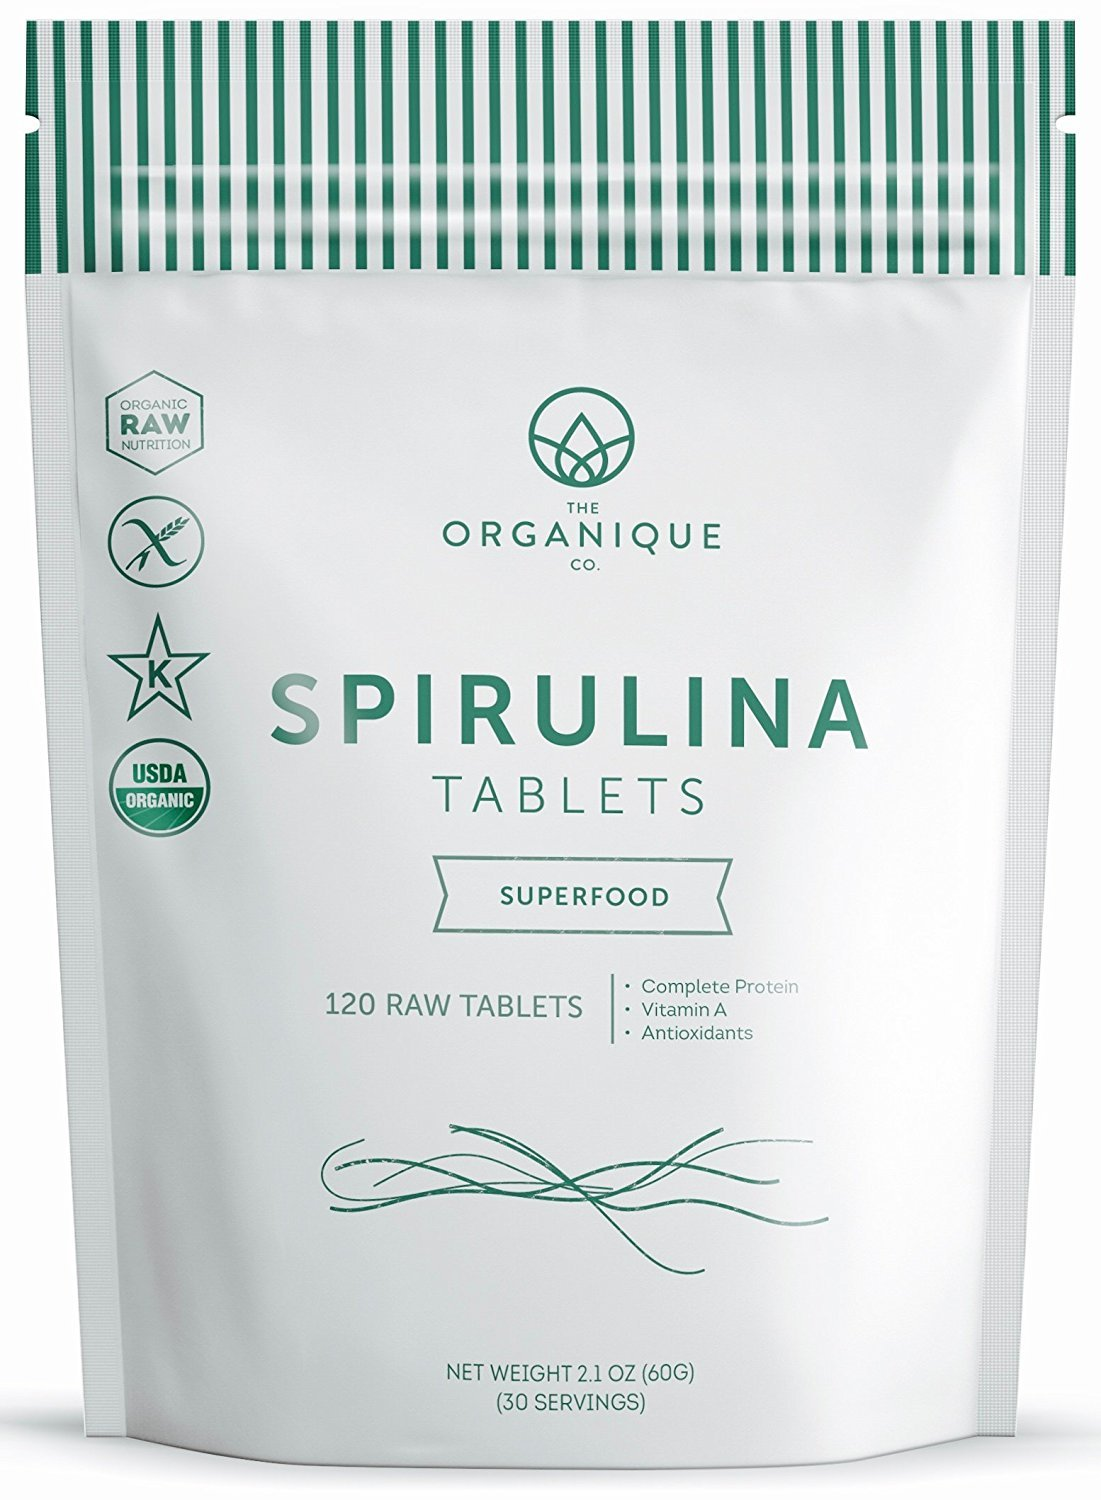 Spirulina Tablets 240ct 500m - Boosts Energy, Supports Immunity - Certified Organic Superfood, Non-Irradiated, Raw, Non-GMO, Vegan, Gluten Free - Nutrient Density Bioavailability - by Organique